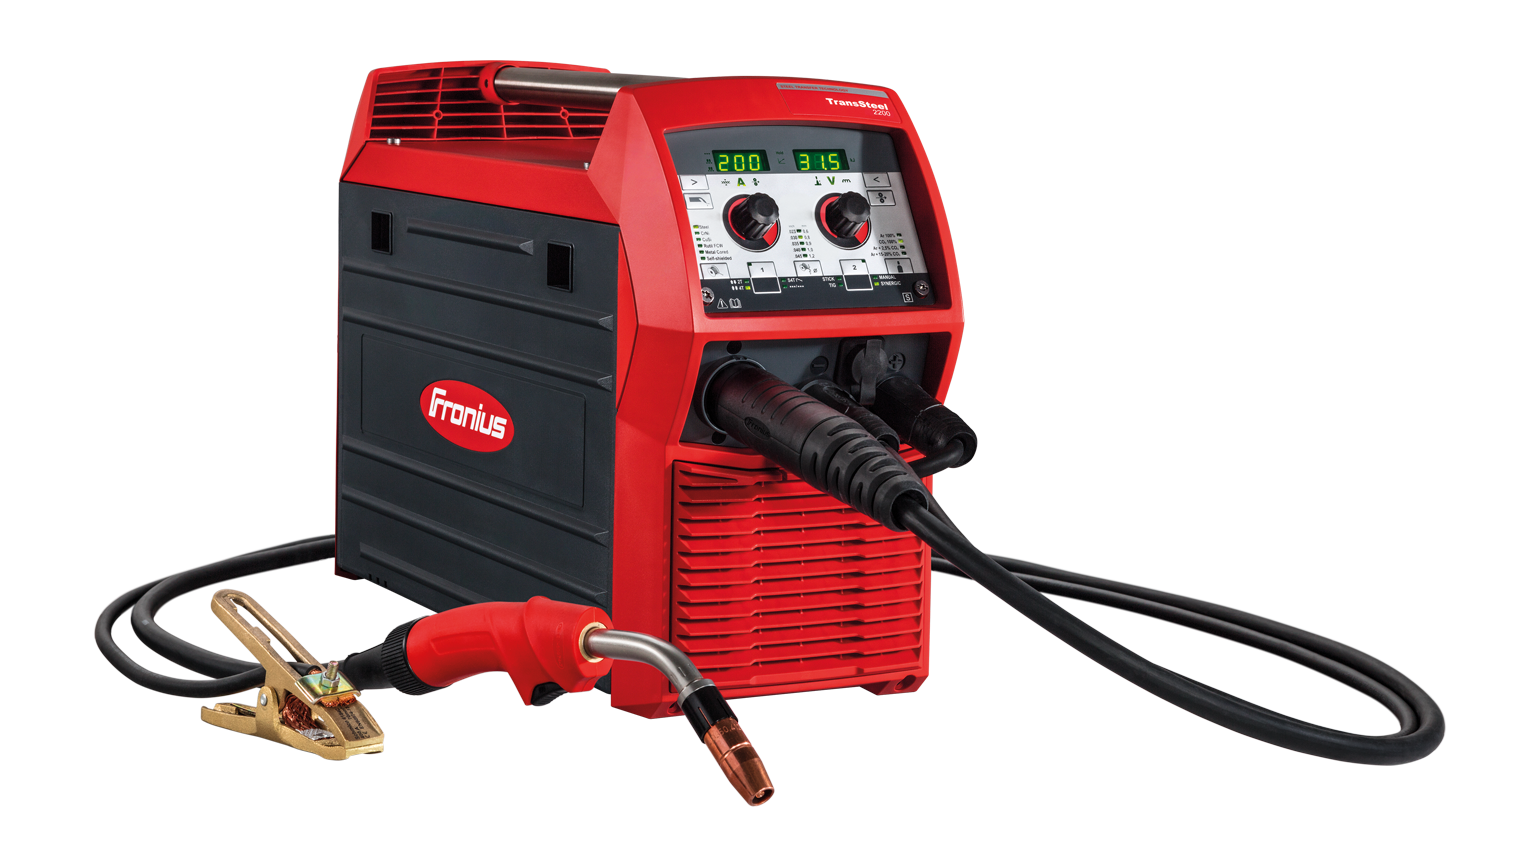 Transsteel 2200 Wiring Additionally Phone Cable Diagram Besides Telephone The Is A Compact 3 In 1 Solution It First Single Phase Inverter Power Source From Fronius That Also Multiprocess Capable